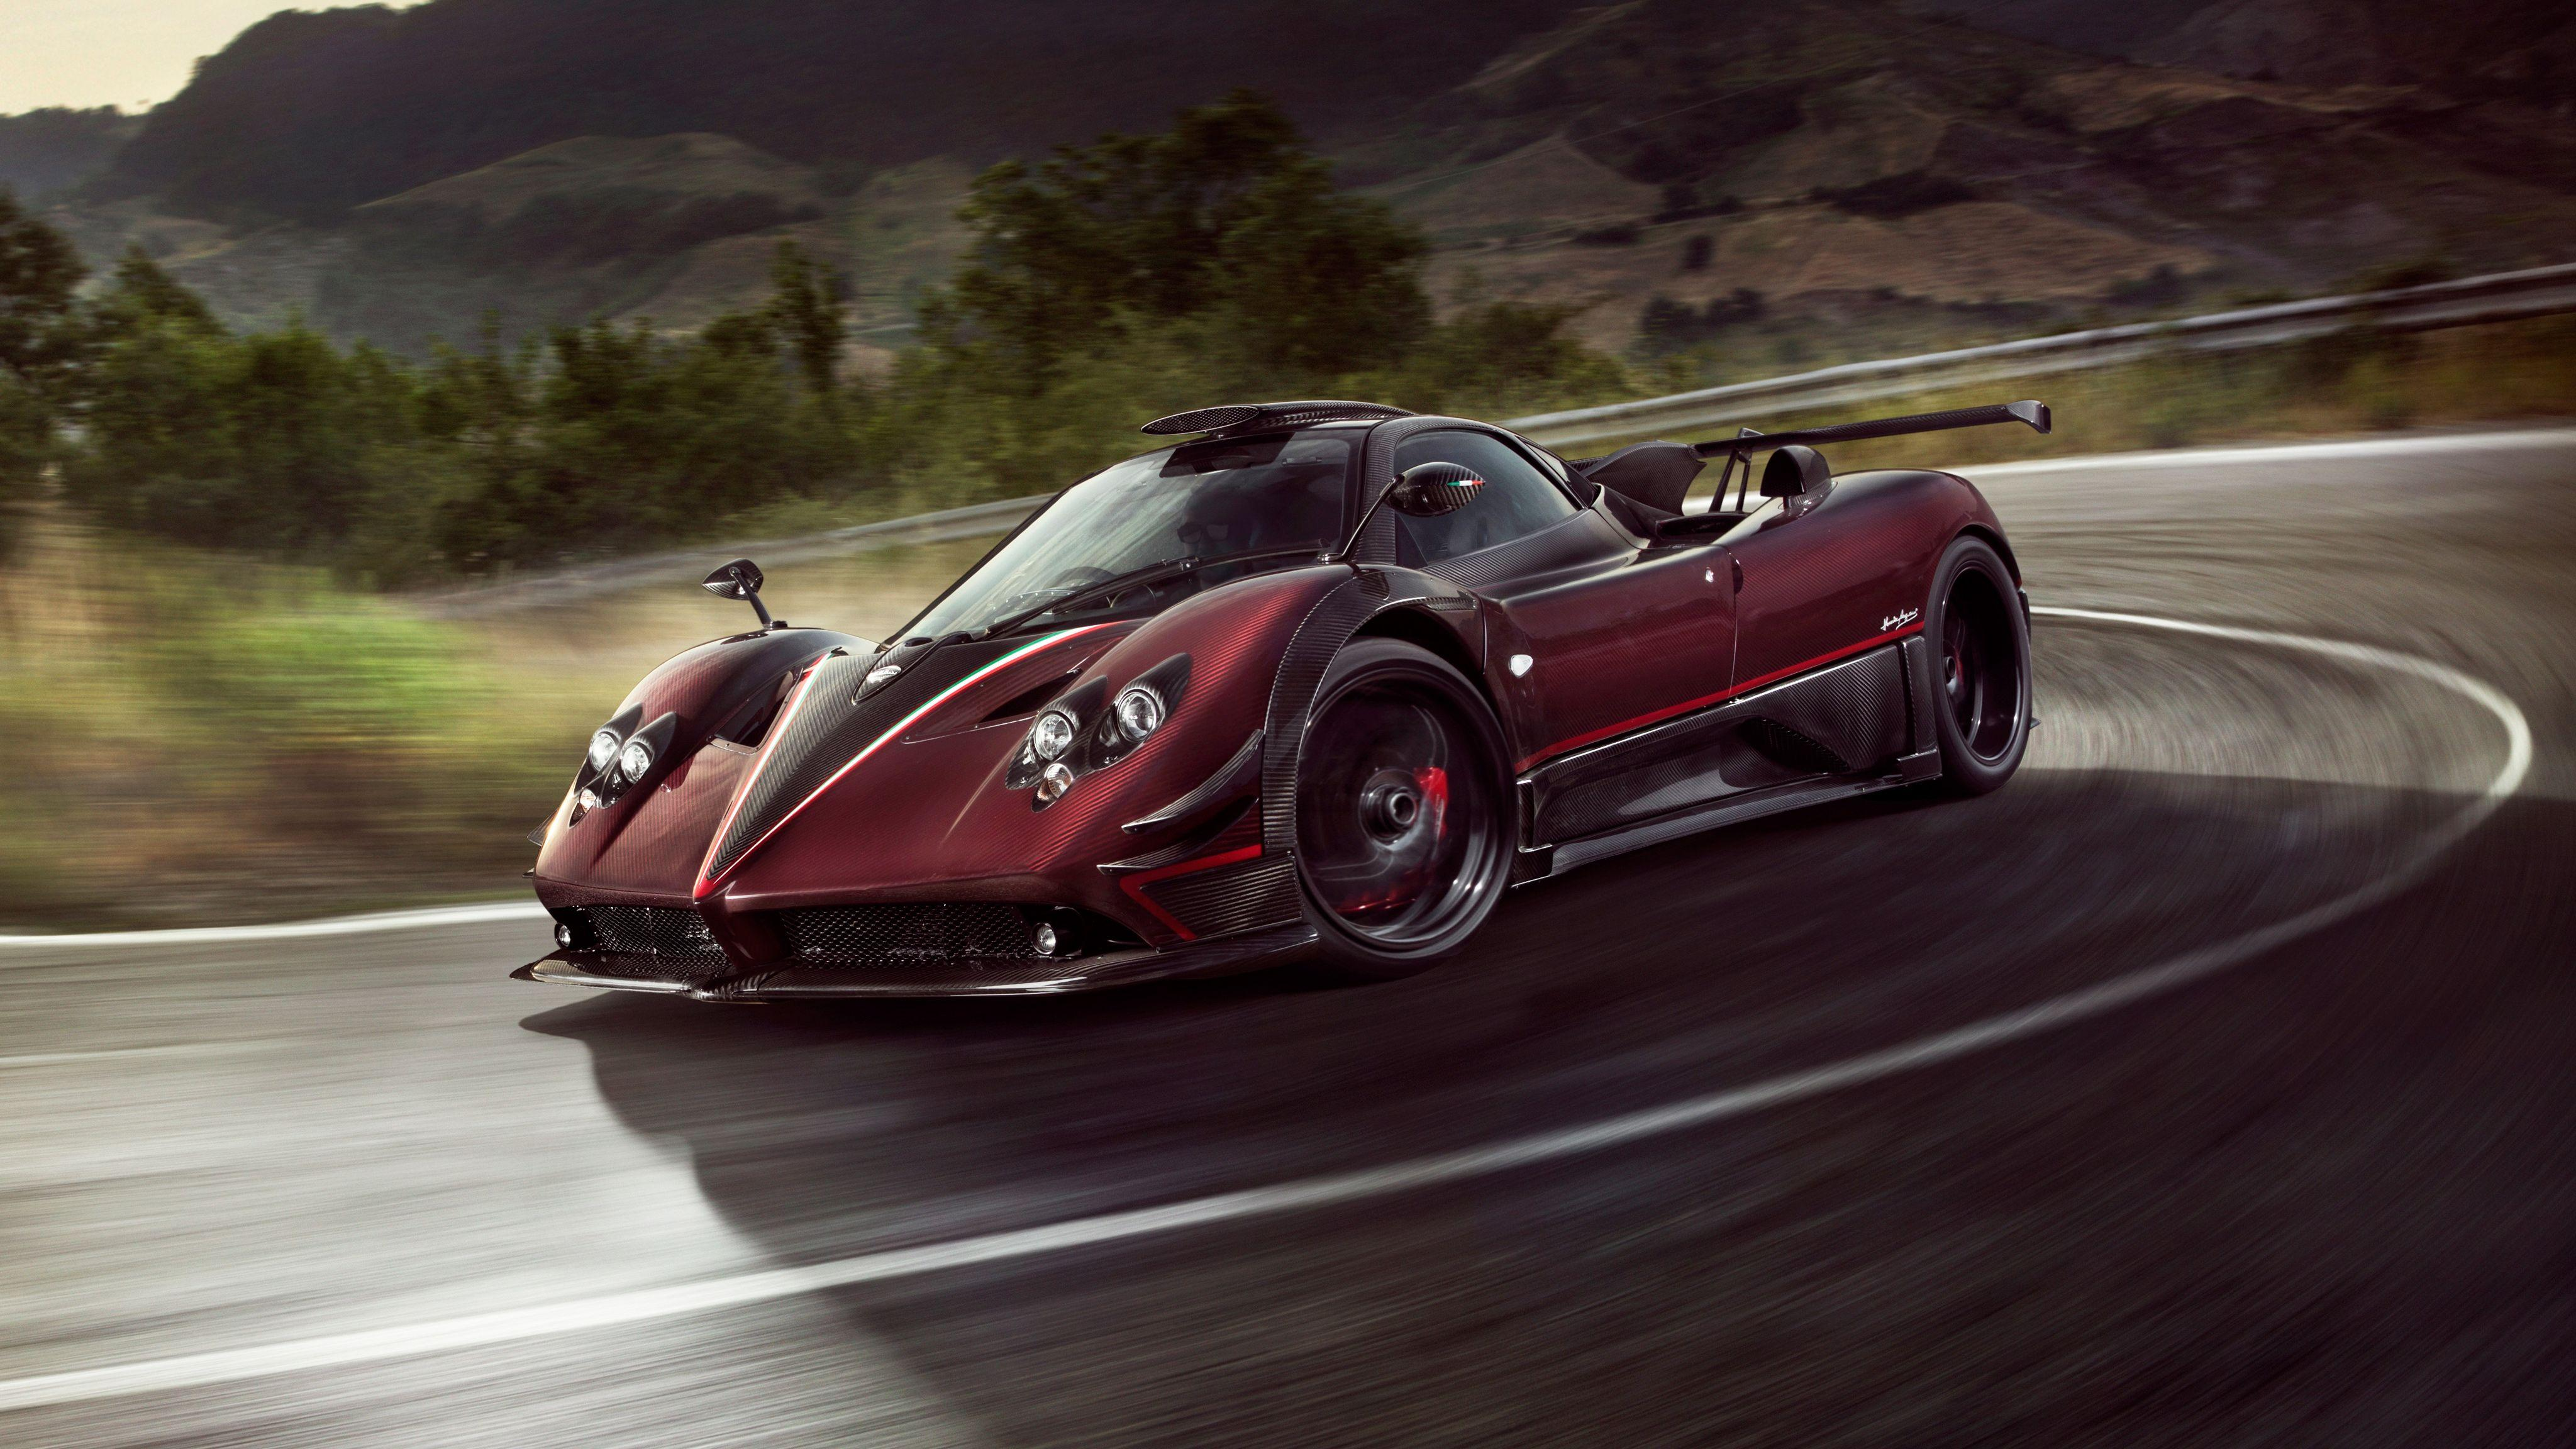 2017 Pagani Zonda Fantasma Evo 4K Wallpapers